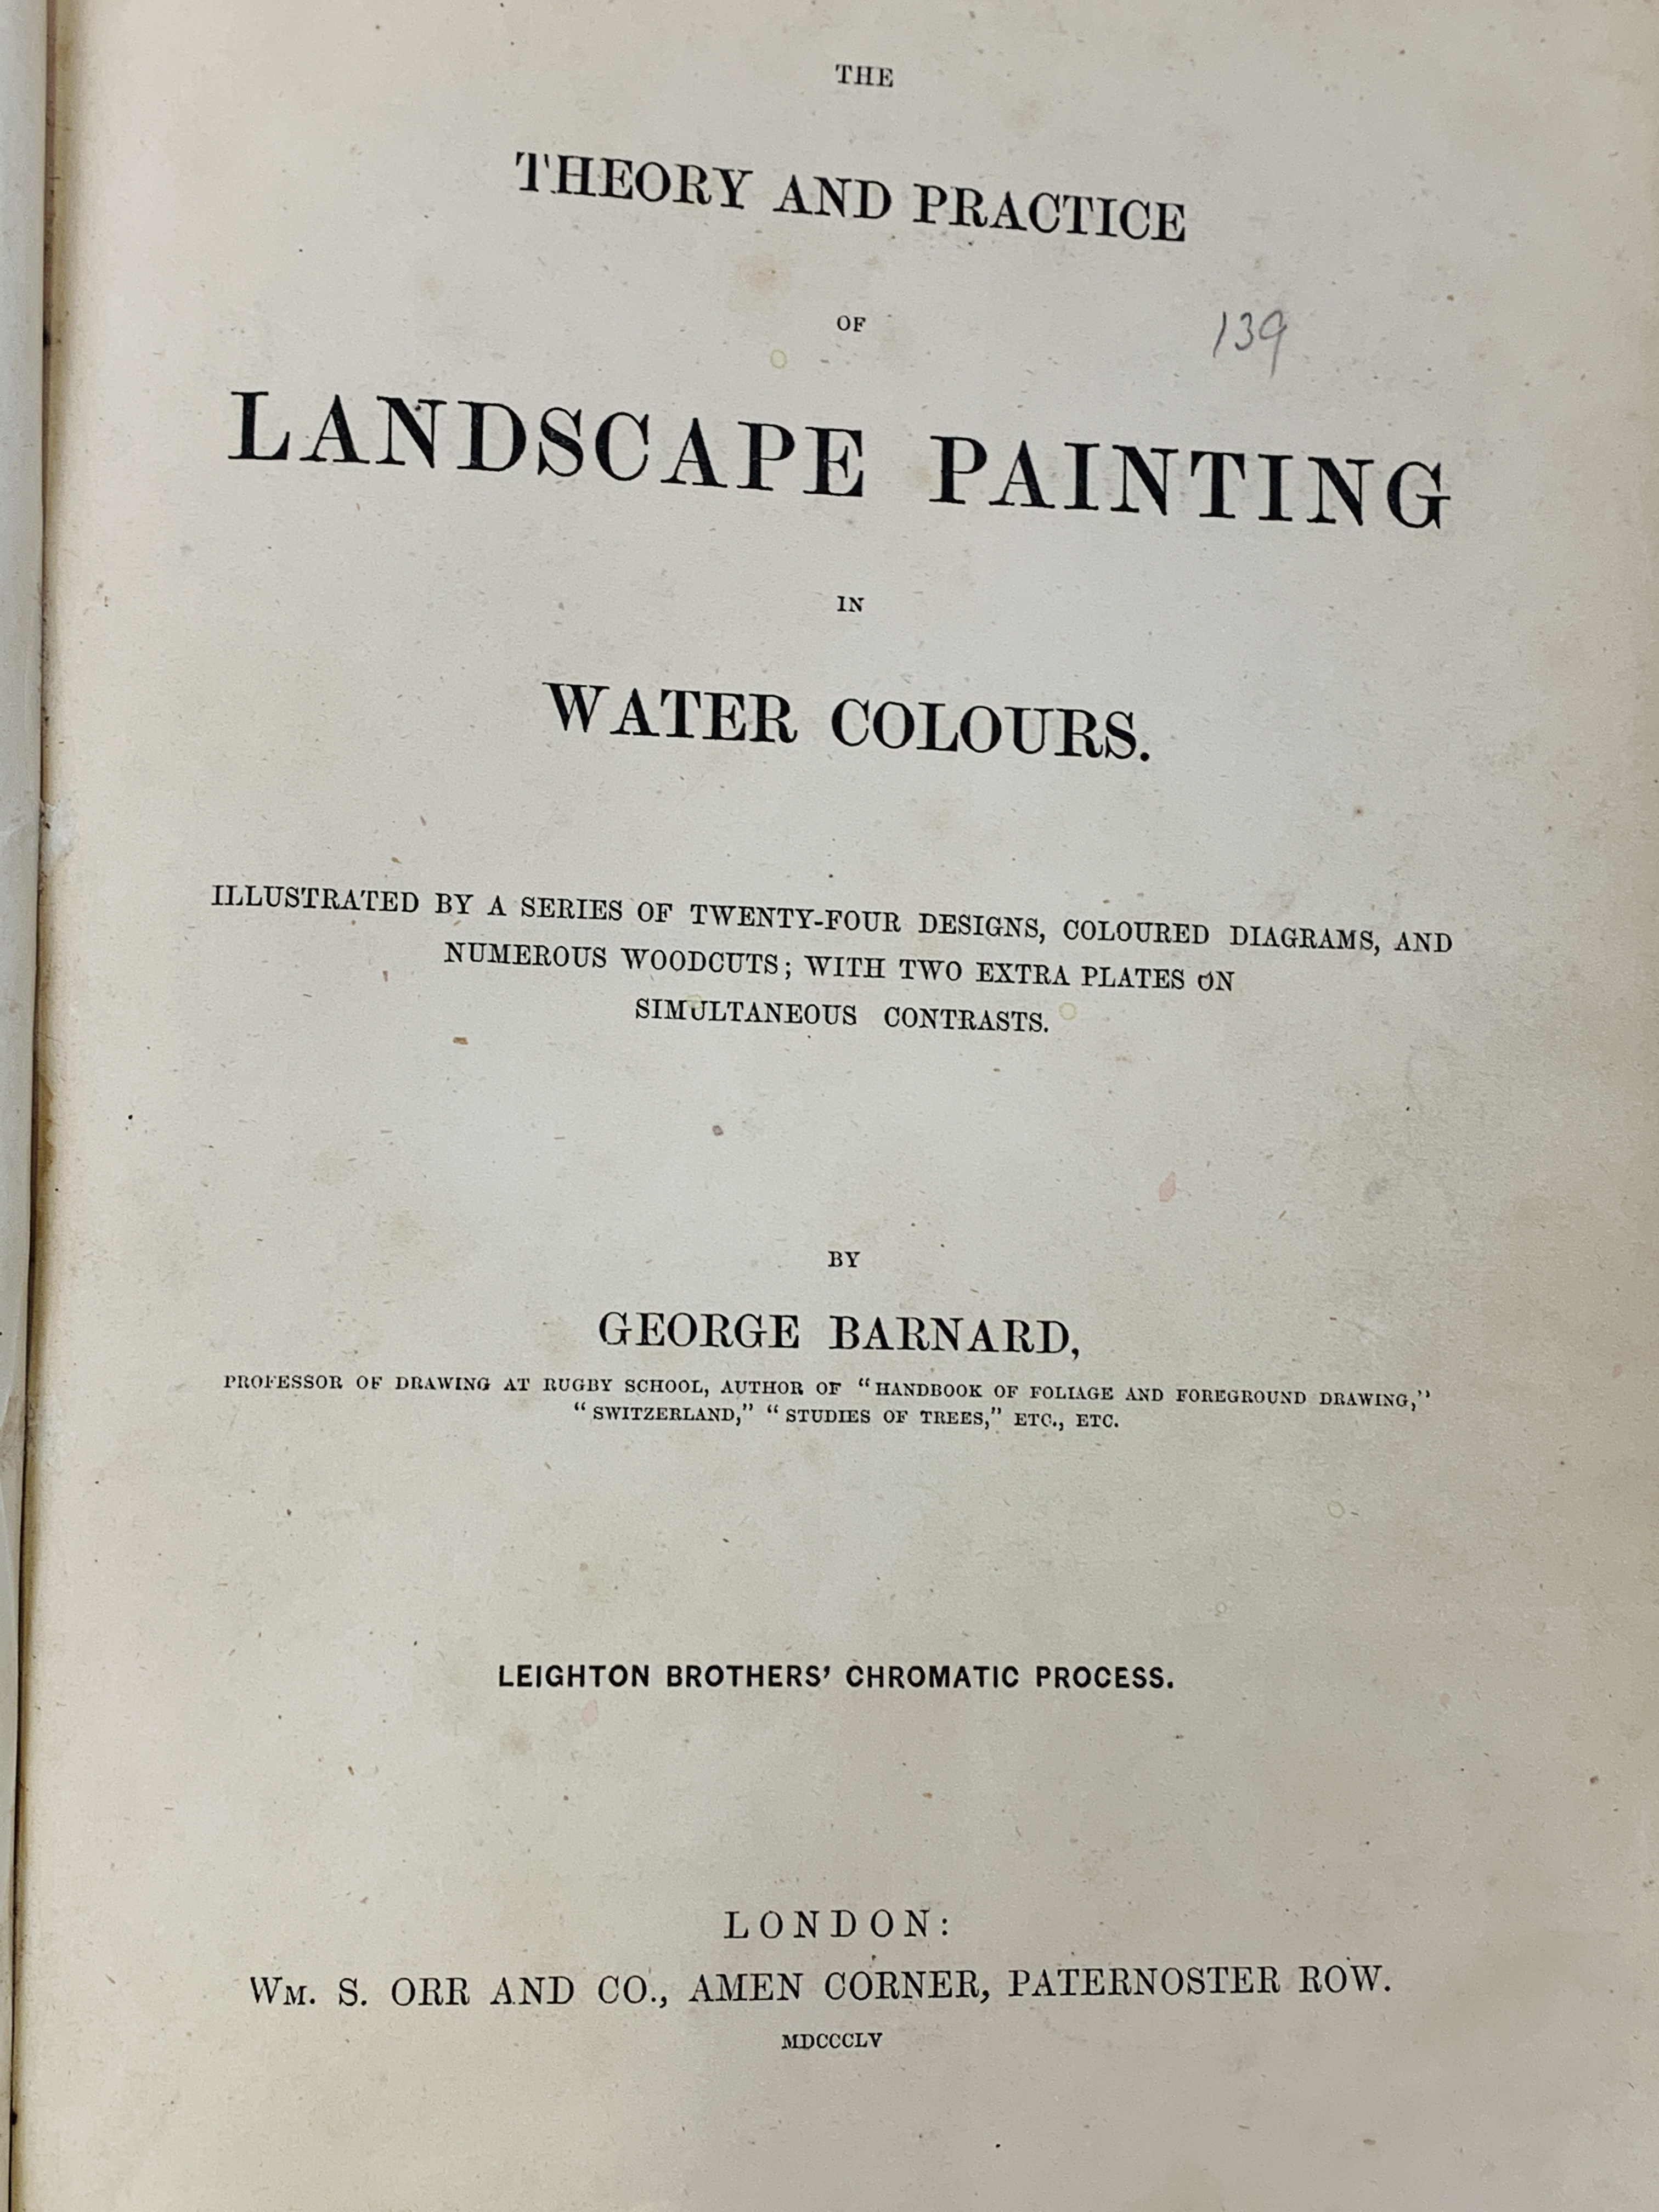 Landscape Painting in Watercolours, 1855, Sketching Without a Master, and Linear Perspective - Image 4 of 7